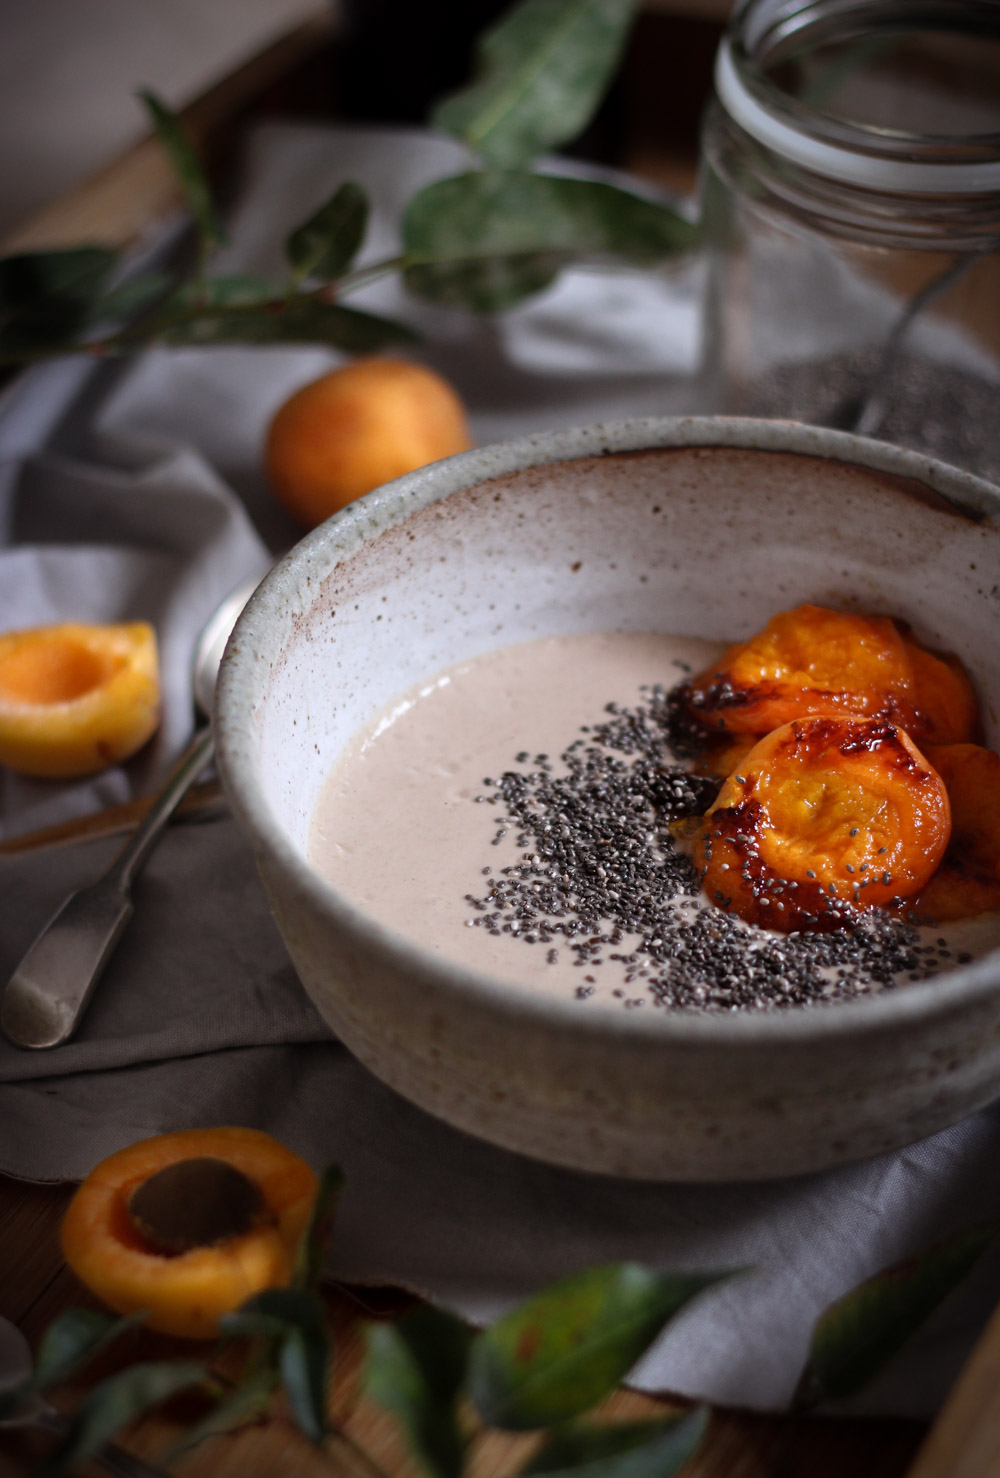 Charred apricot + buckwheat porridge - to her core